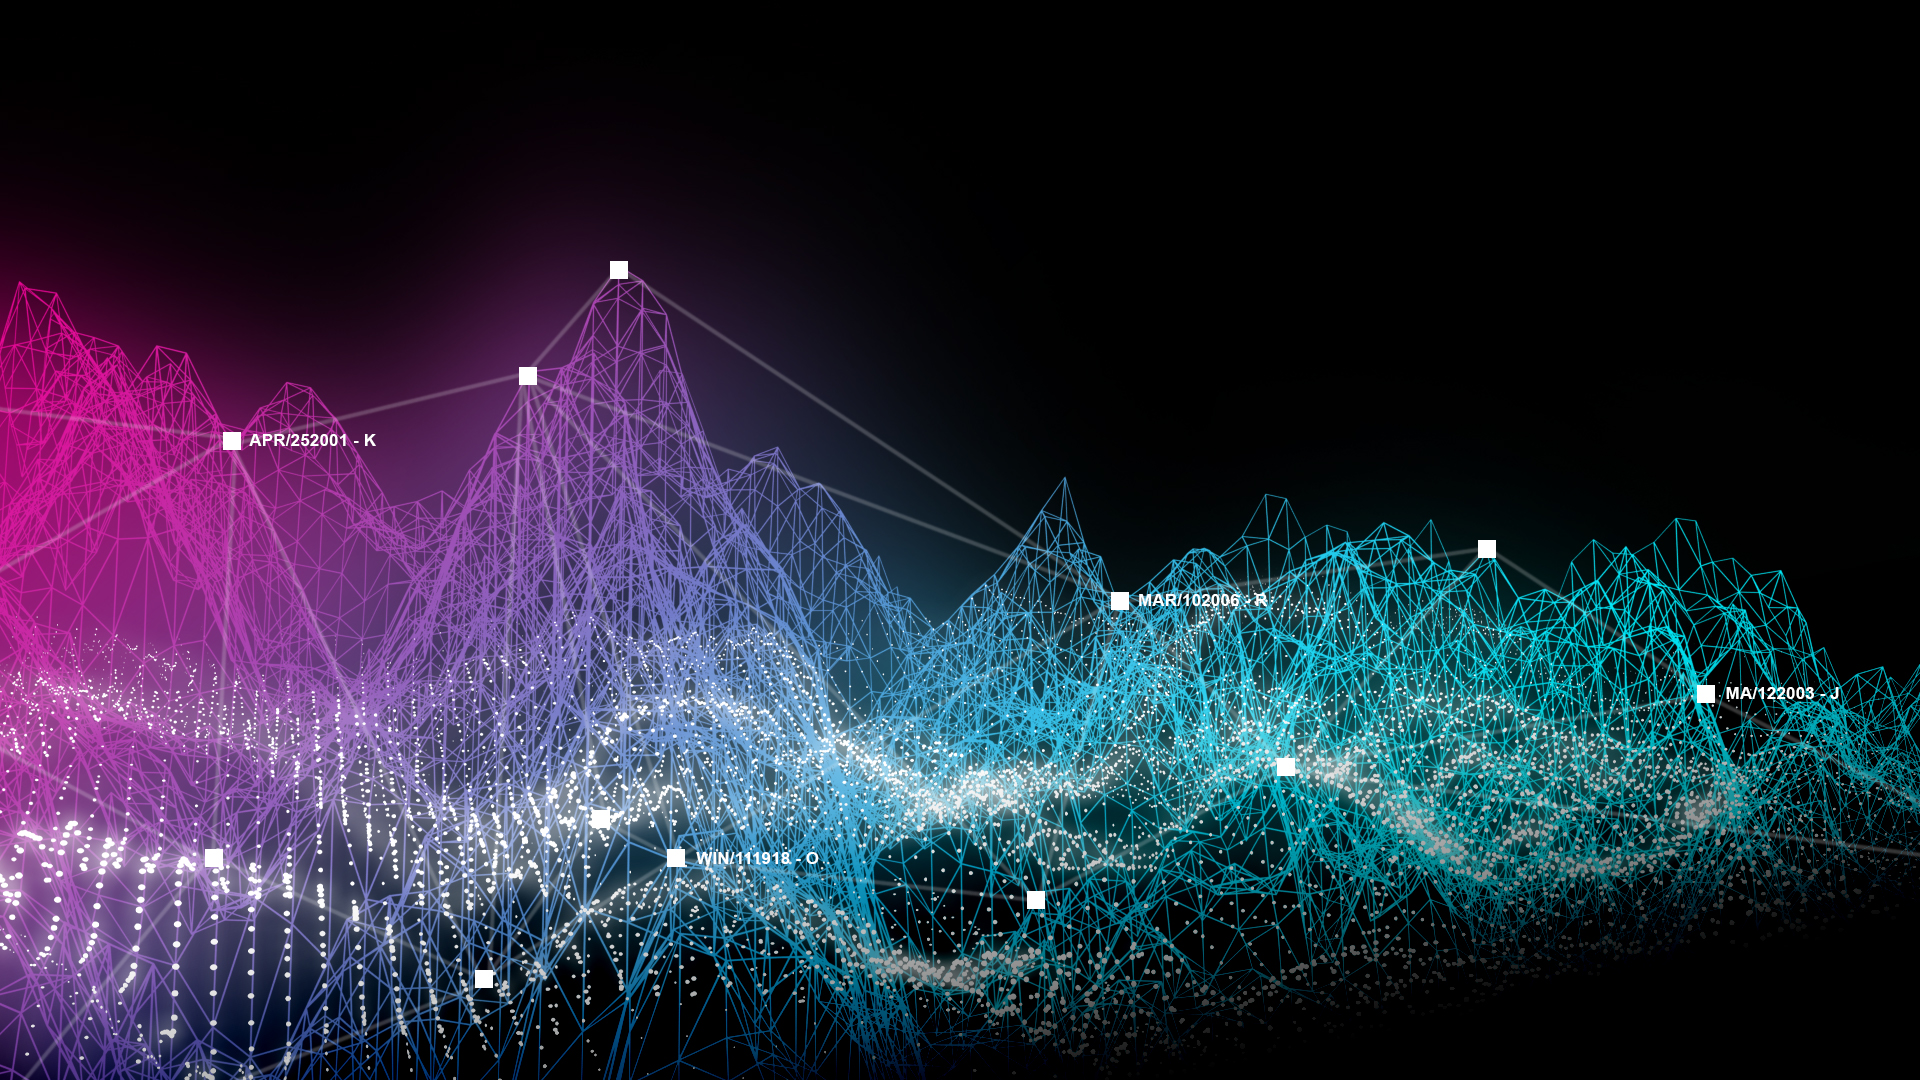 5G will play a key role in providing both the bandwidth and latency required for emerging technologies--like machine learning, artificial intelligence, 3D printing, and extended reality--to operate efficiently within the internet of things ecosystem.